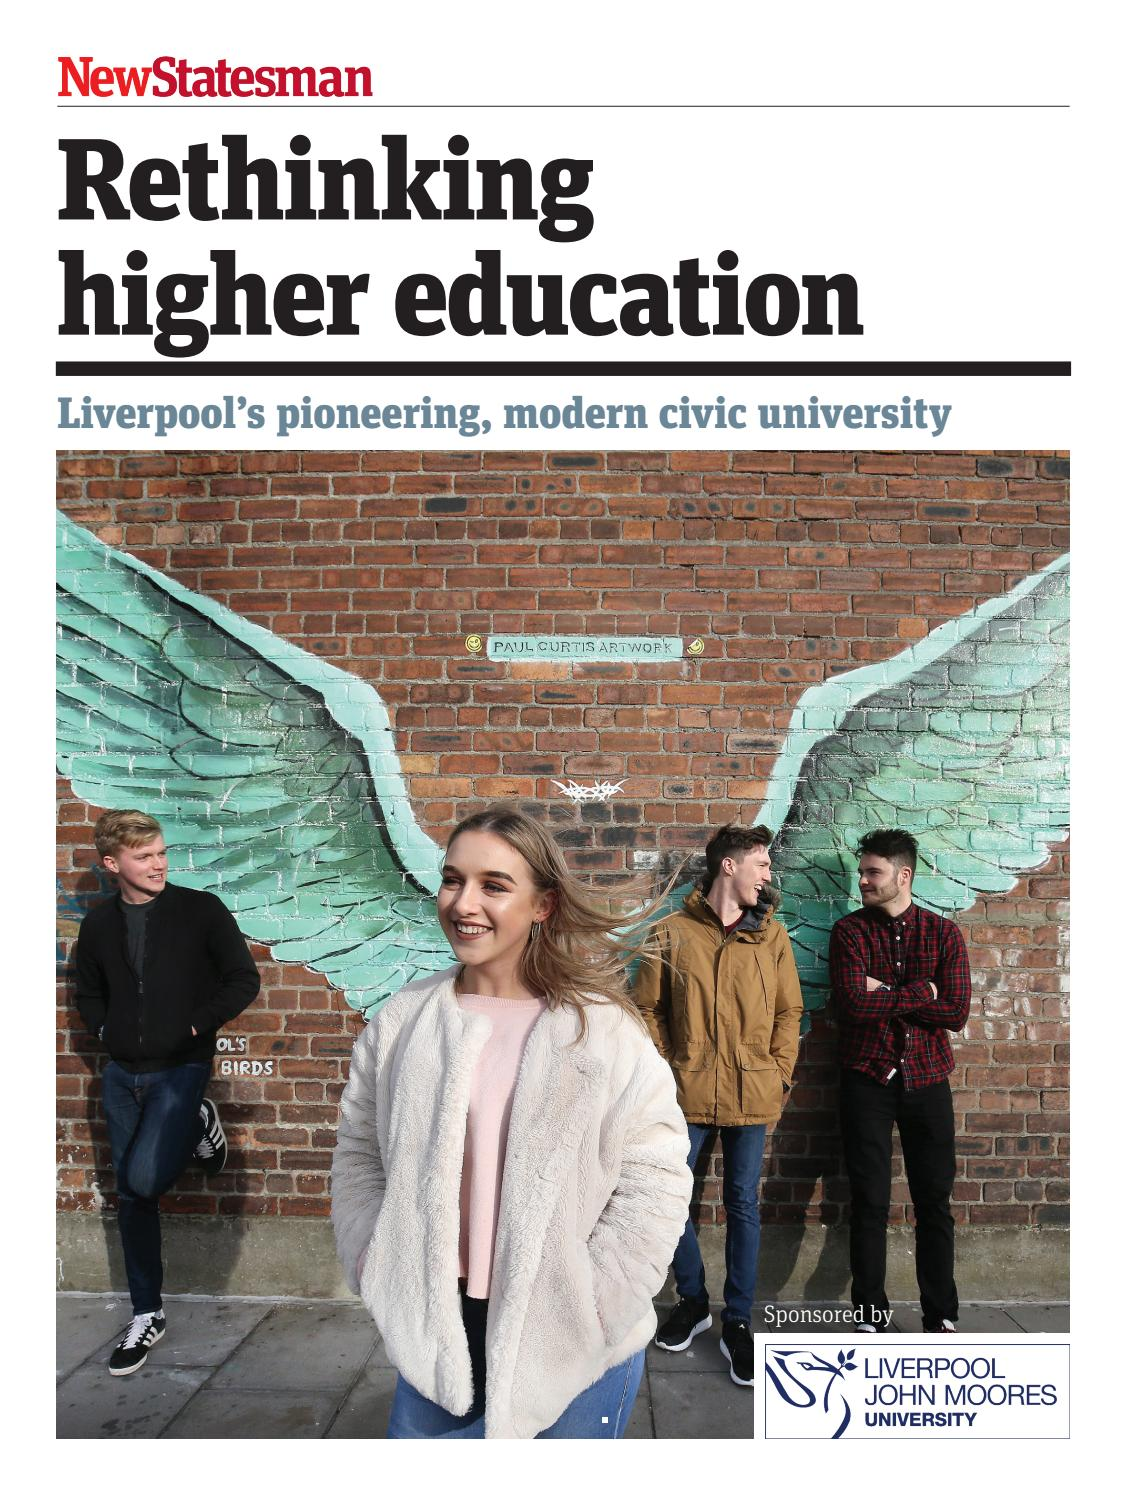 issuu.com - Liverpool John Moores University - New Statesman - Rethinking higher education